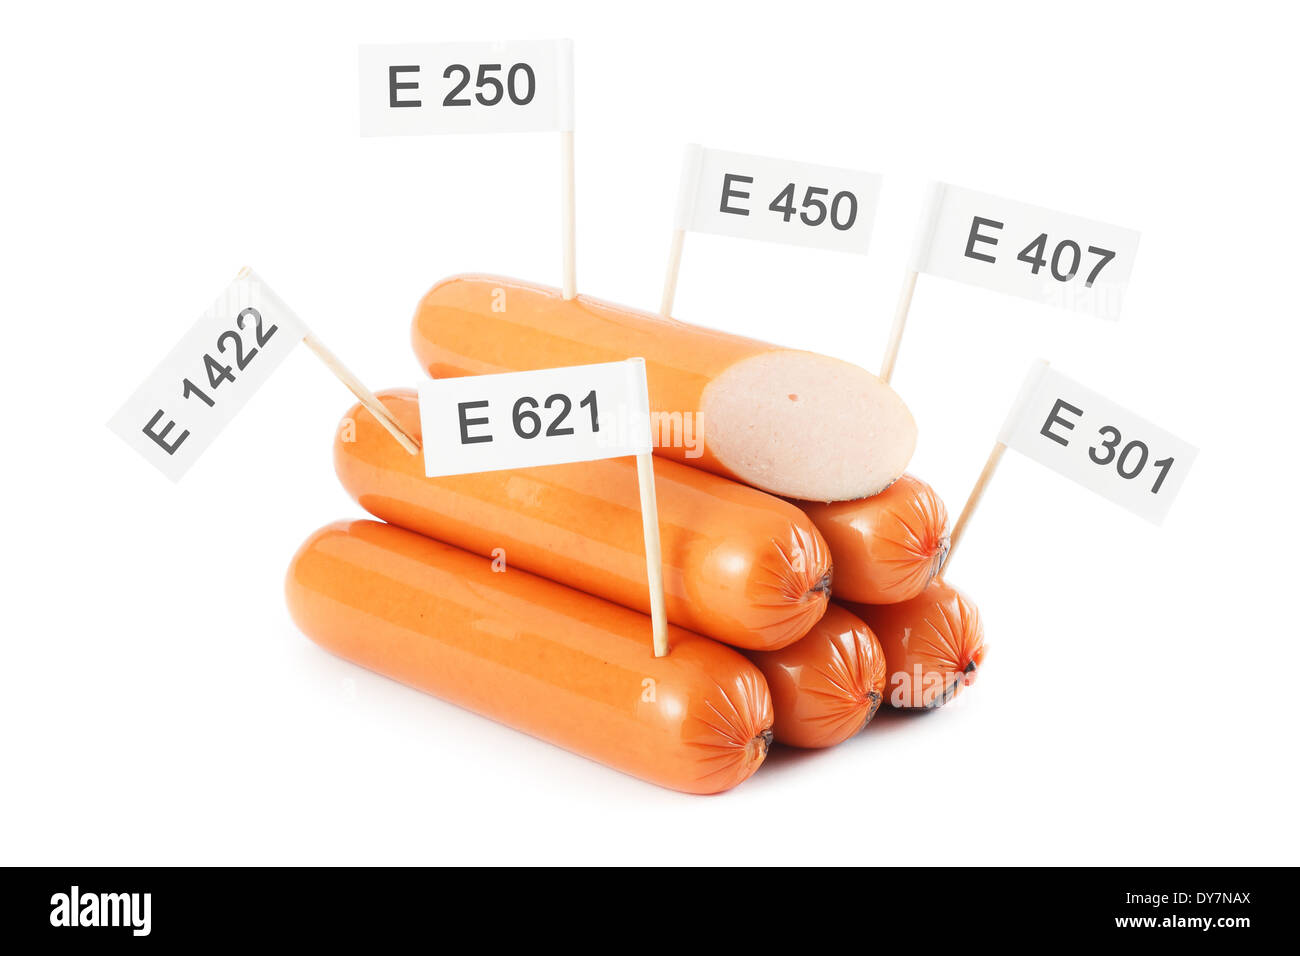 Unhealthy food concept - chemical additives in food. Sausages isloated on white background - Stock Image